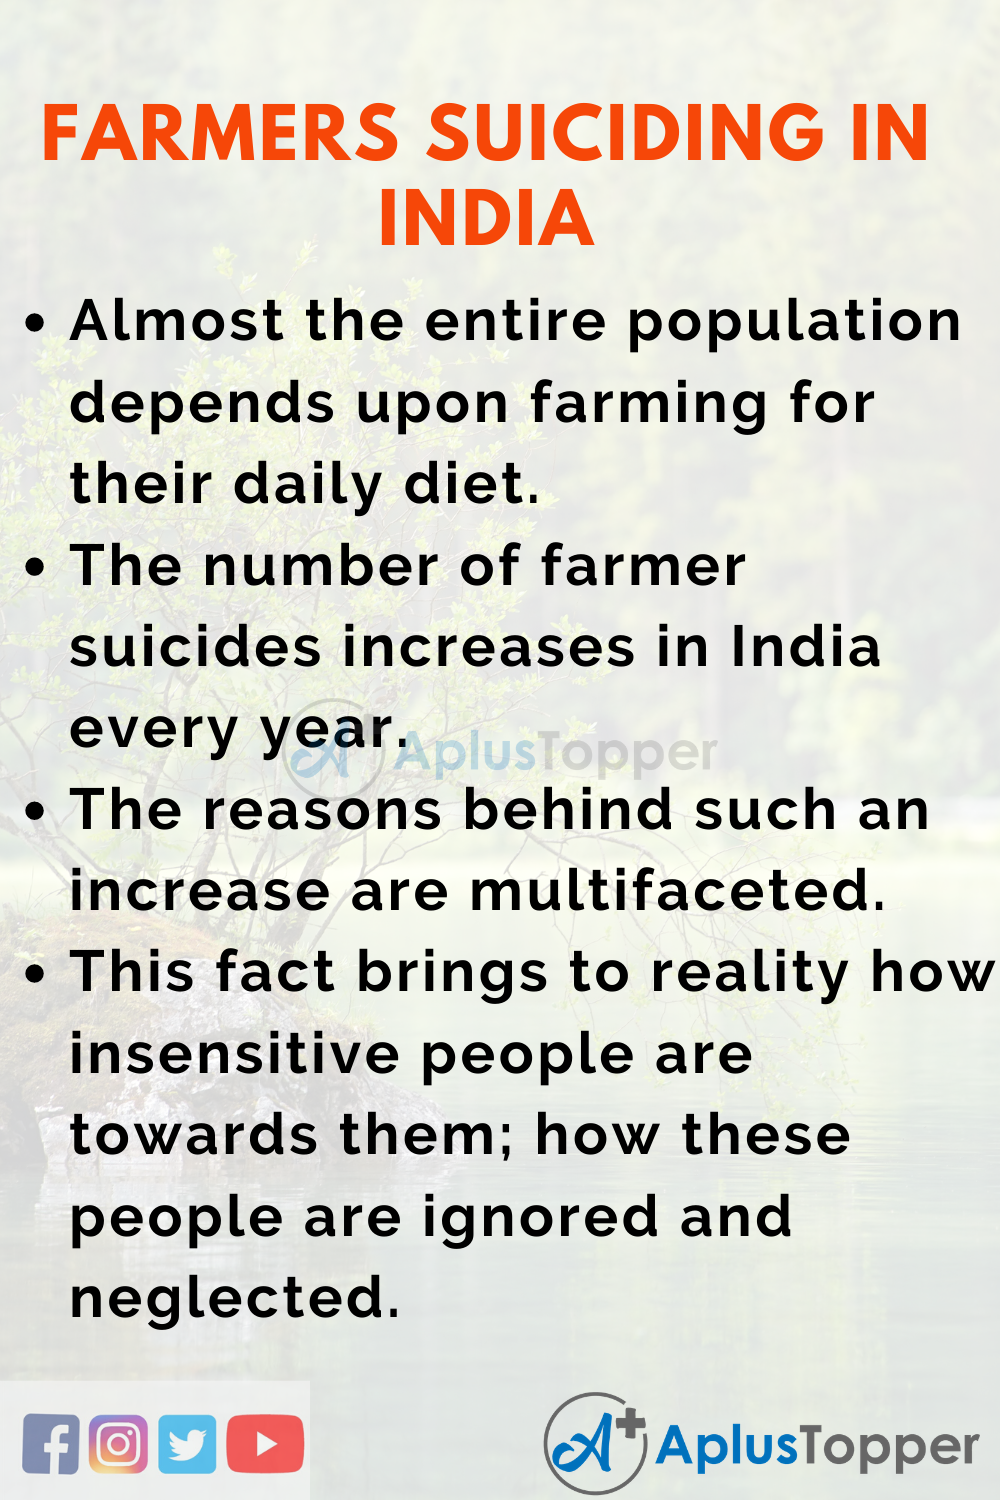 Essay about Farmers Suiciding in India